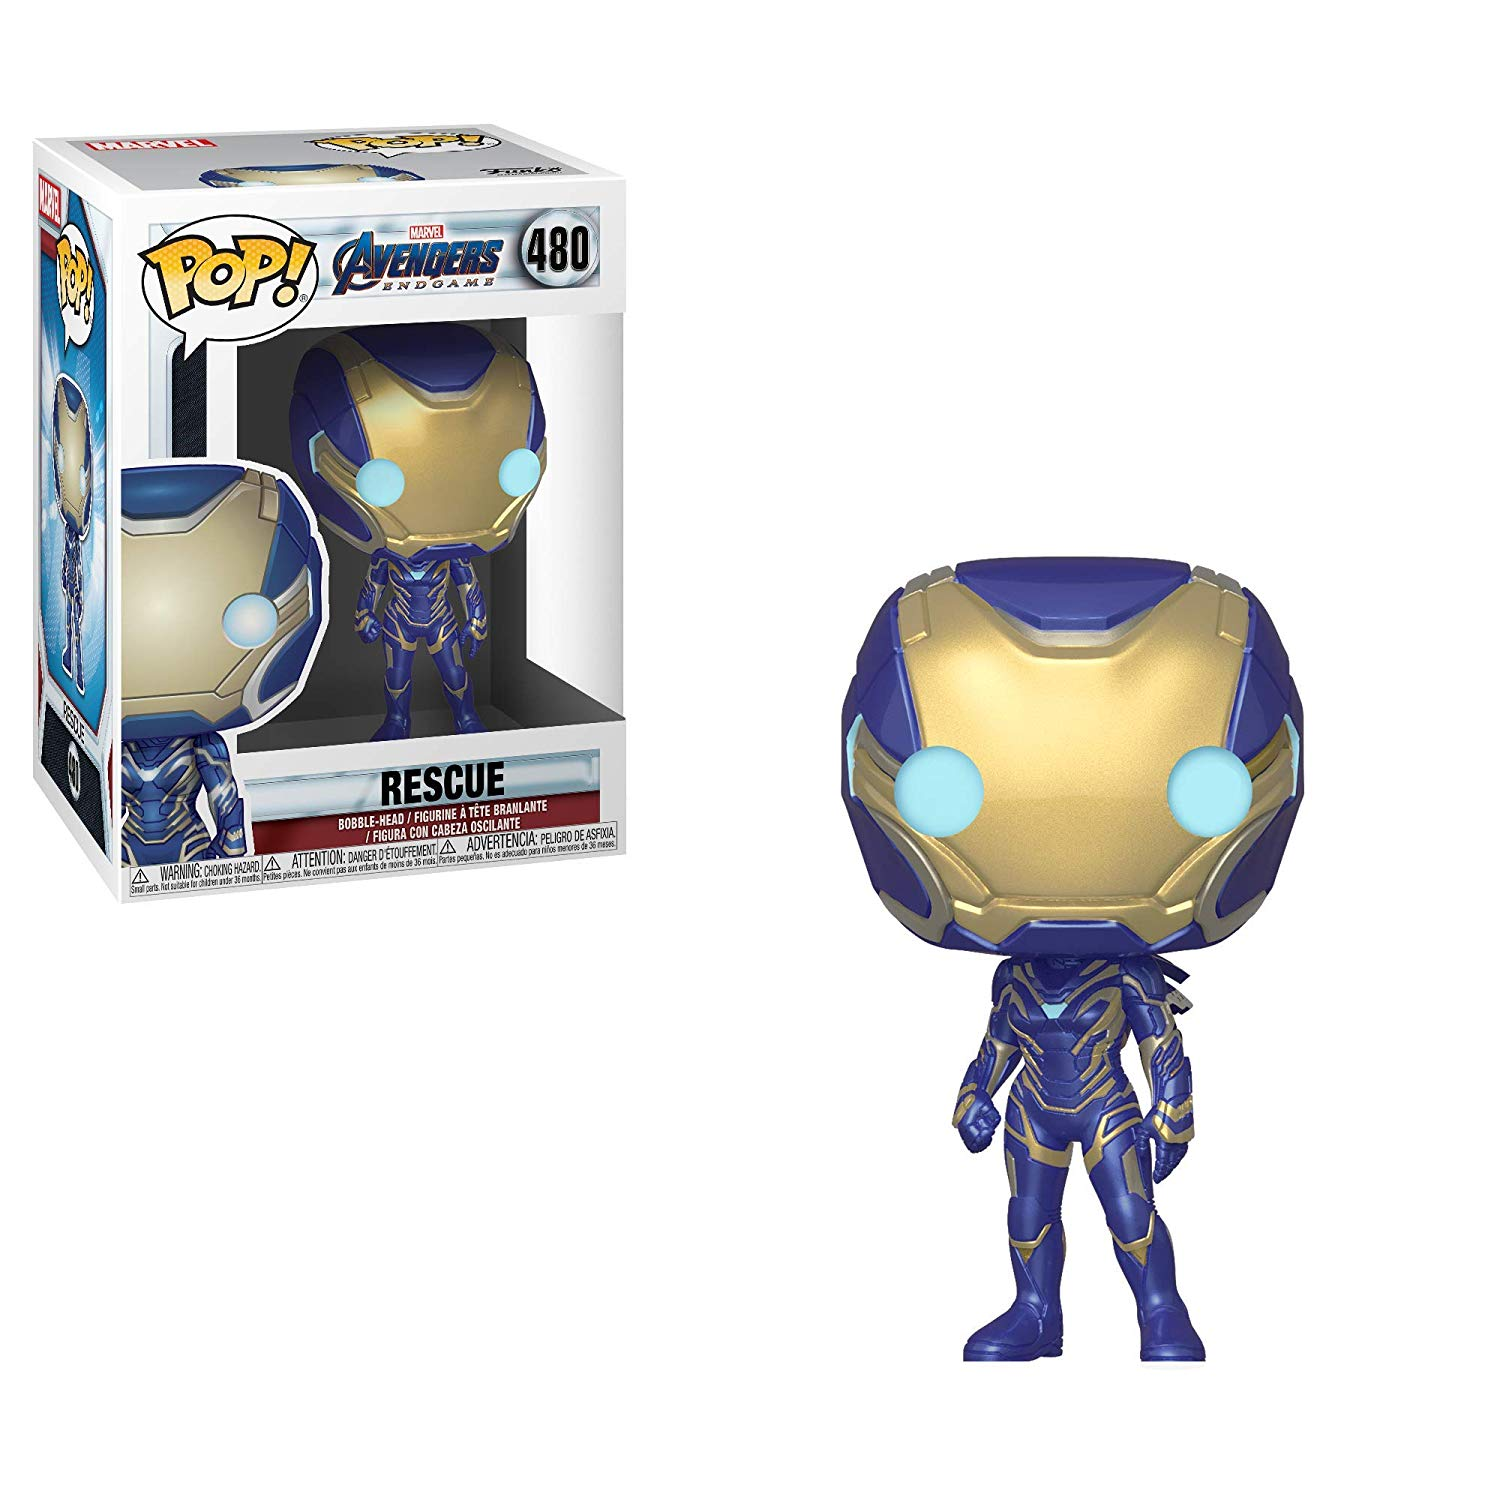 Pop! Marvel Avengers: Endgame Vinyl Bobble-Head Rescue #480